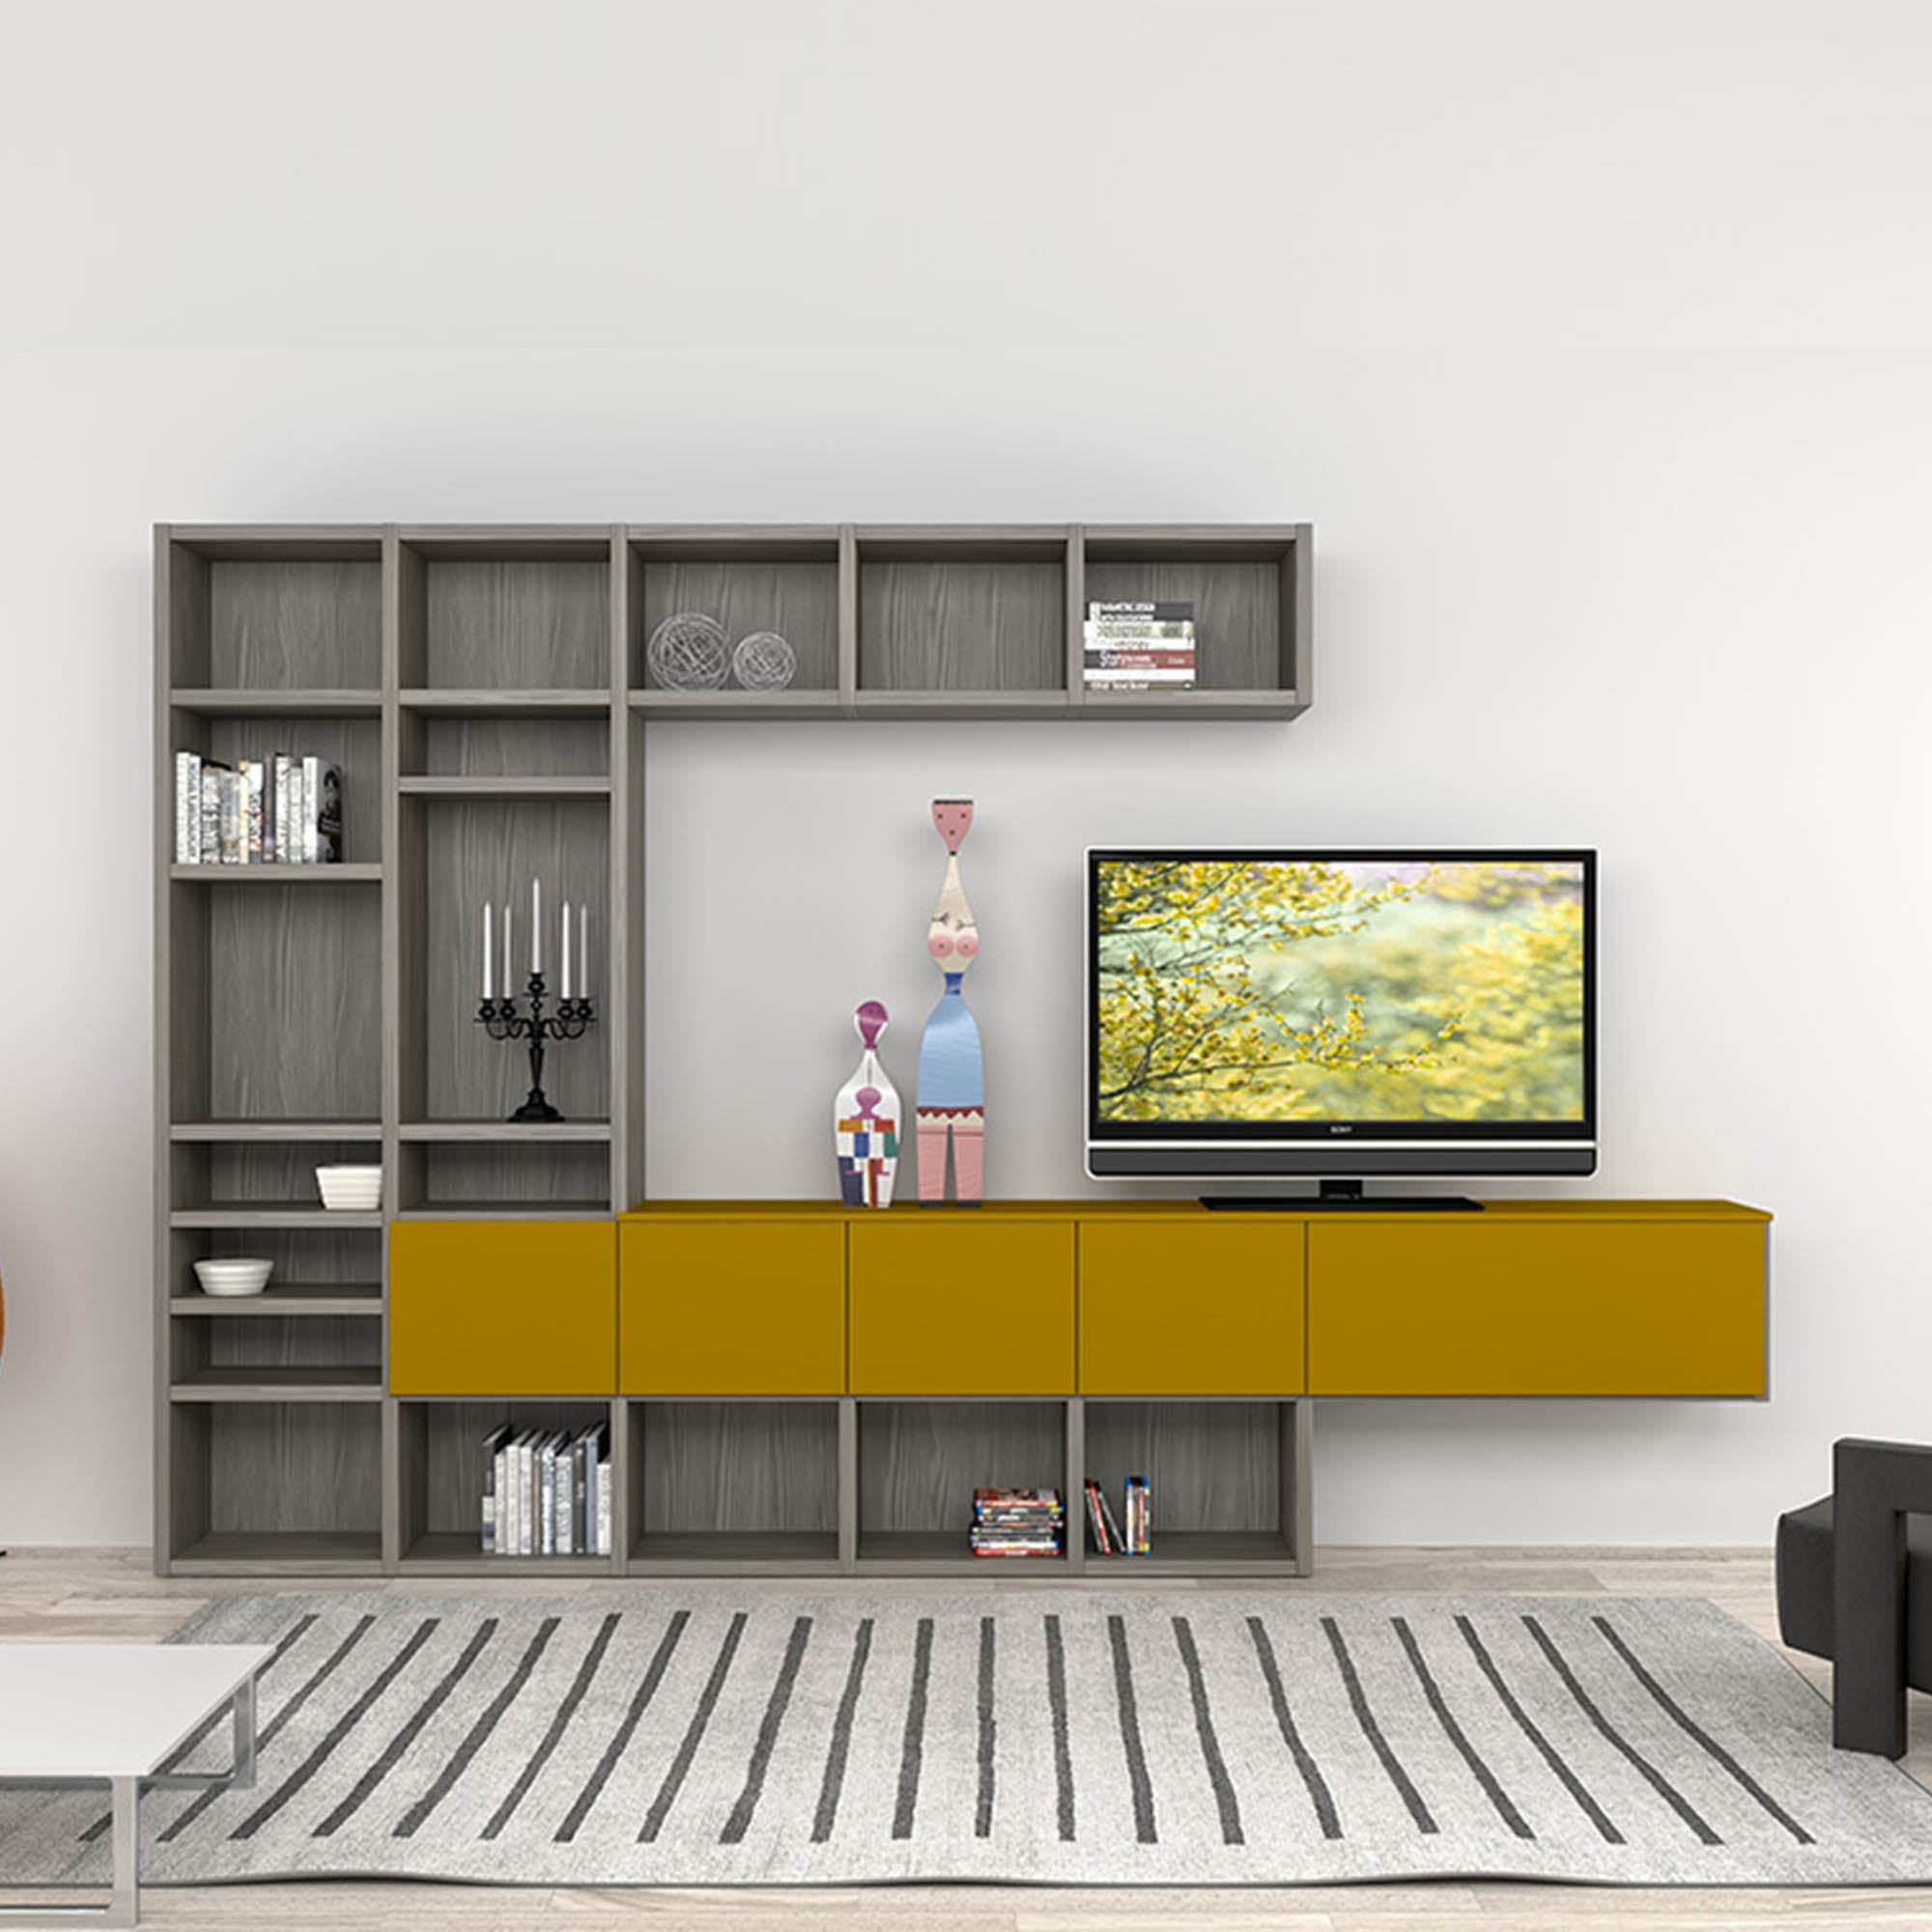 Modern Italian Tv Stand In Composition Of Grey And Mustard Colours Intended For Bespoke Tv Stands (View 12 of 15)